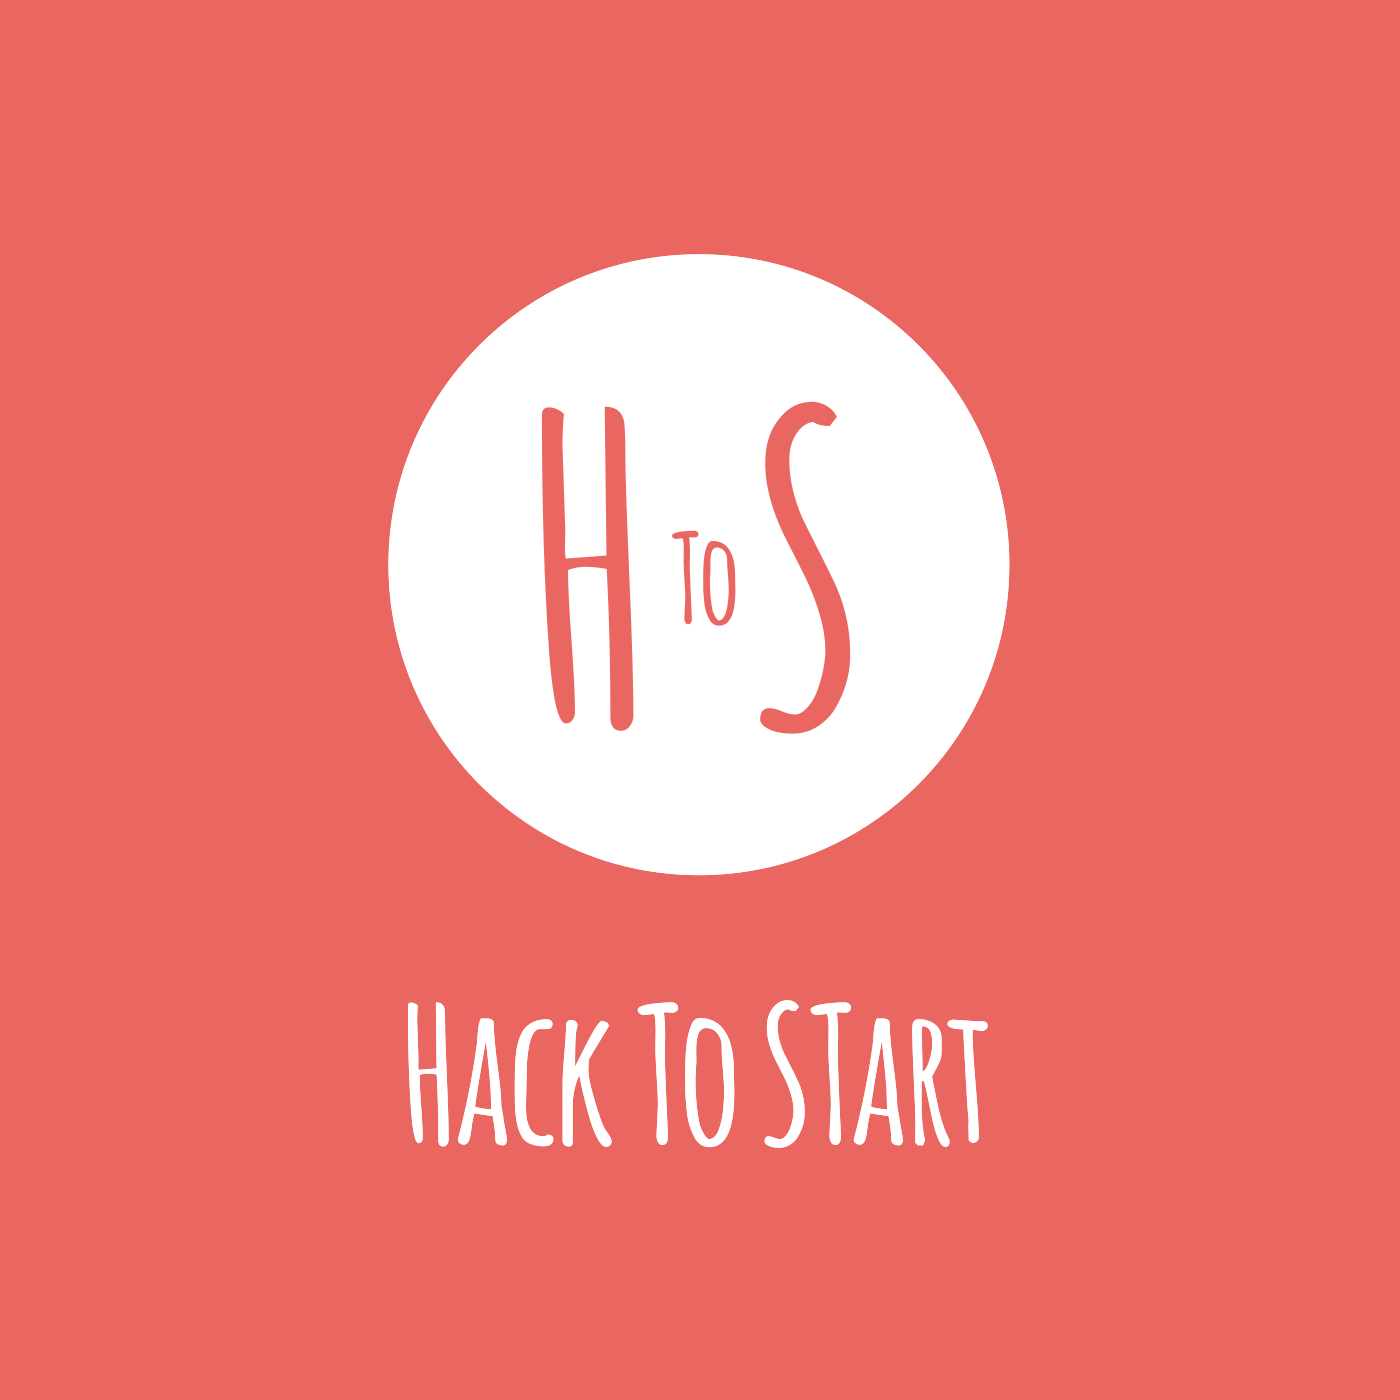 Hack To Start - A Podcast Focused On Interesting People And The Innovative Ways They Achieve Success